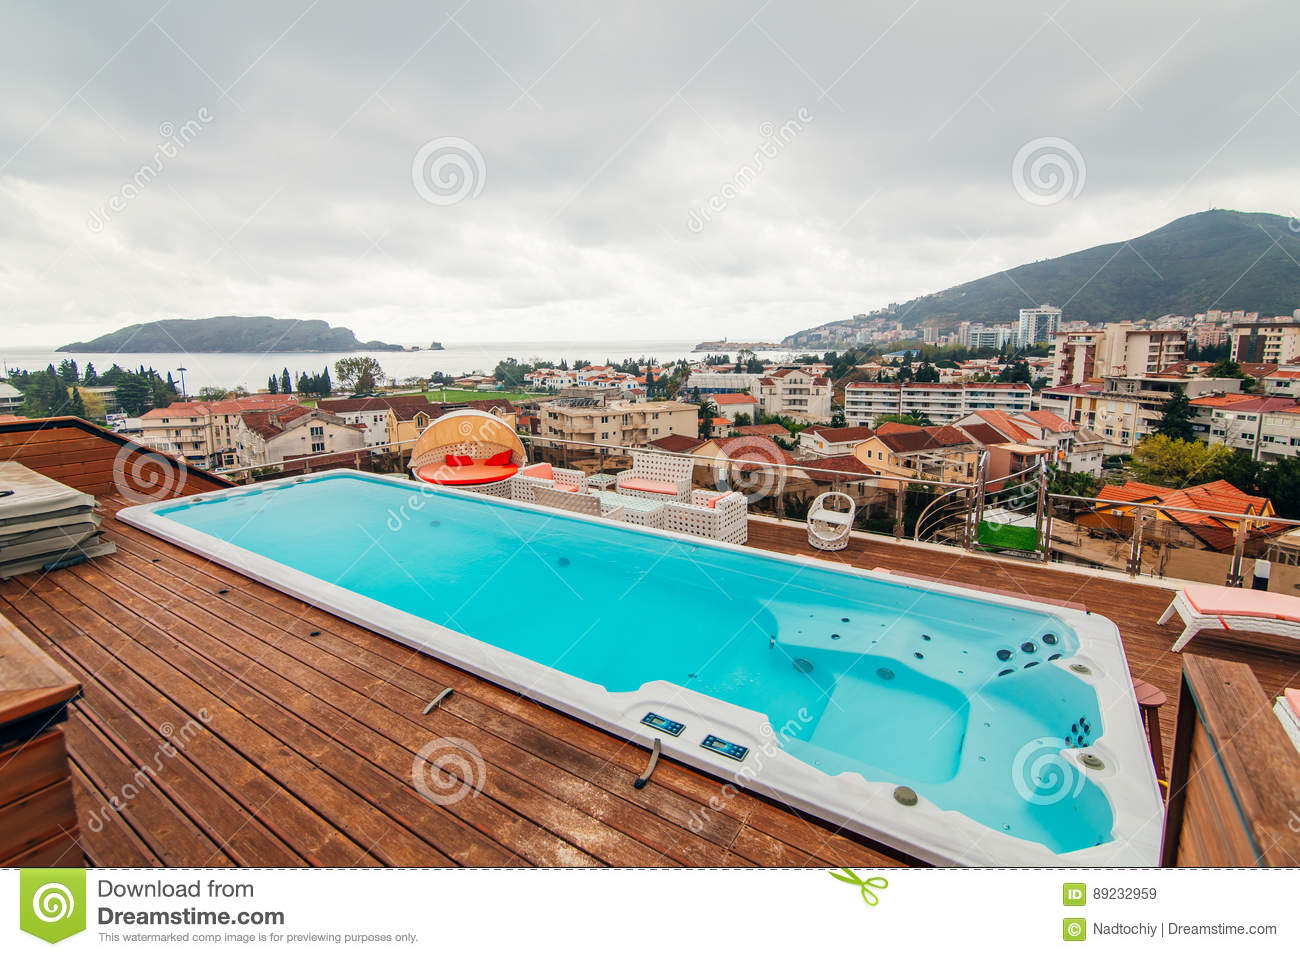 Swimming Pool On The Roof Of A House Stock Image Image Of Sands Cool 89232959